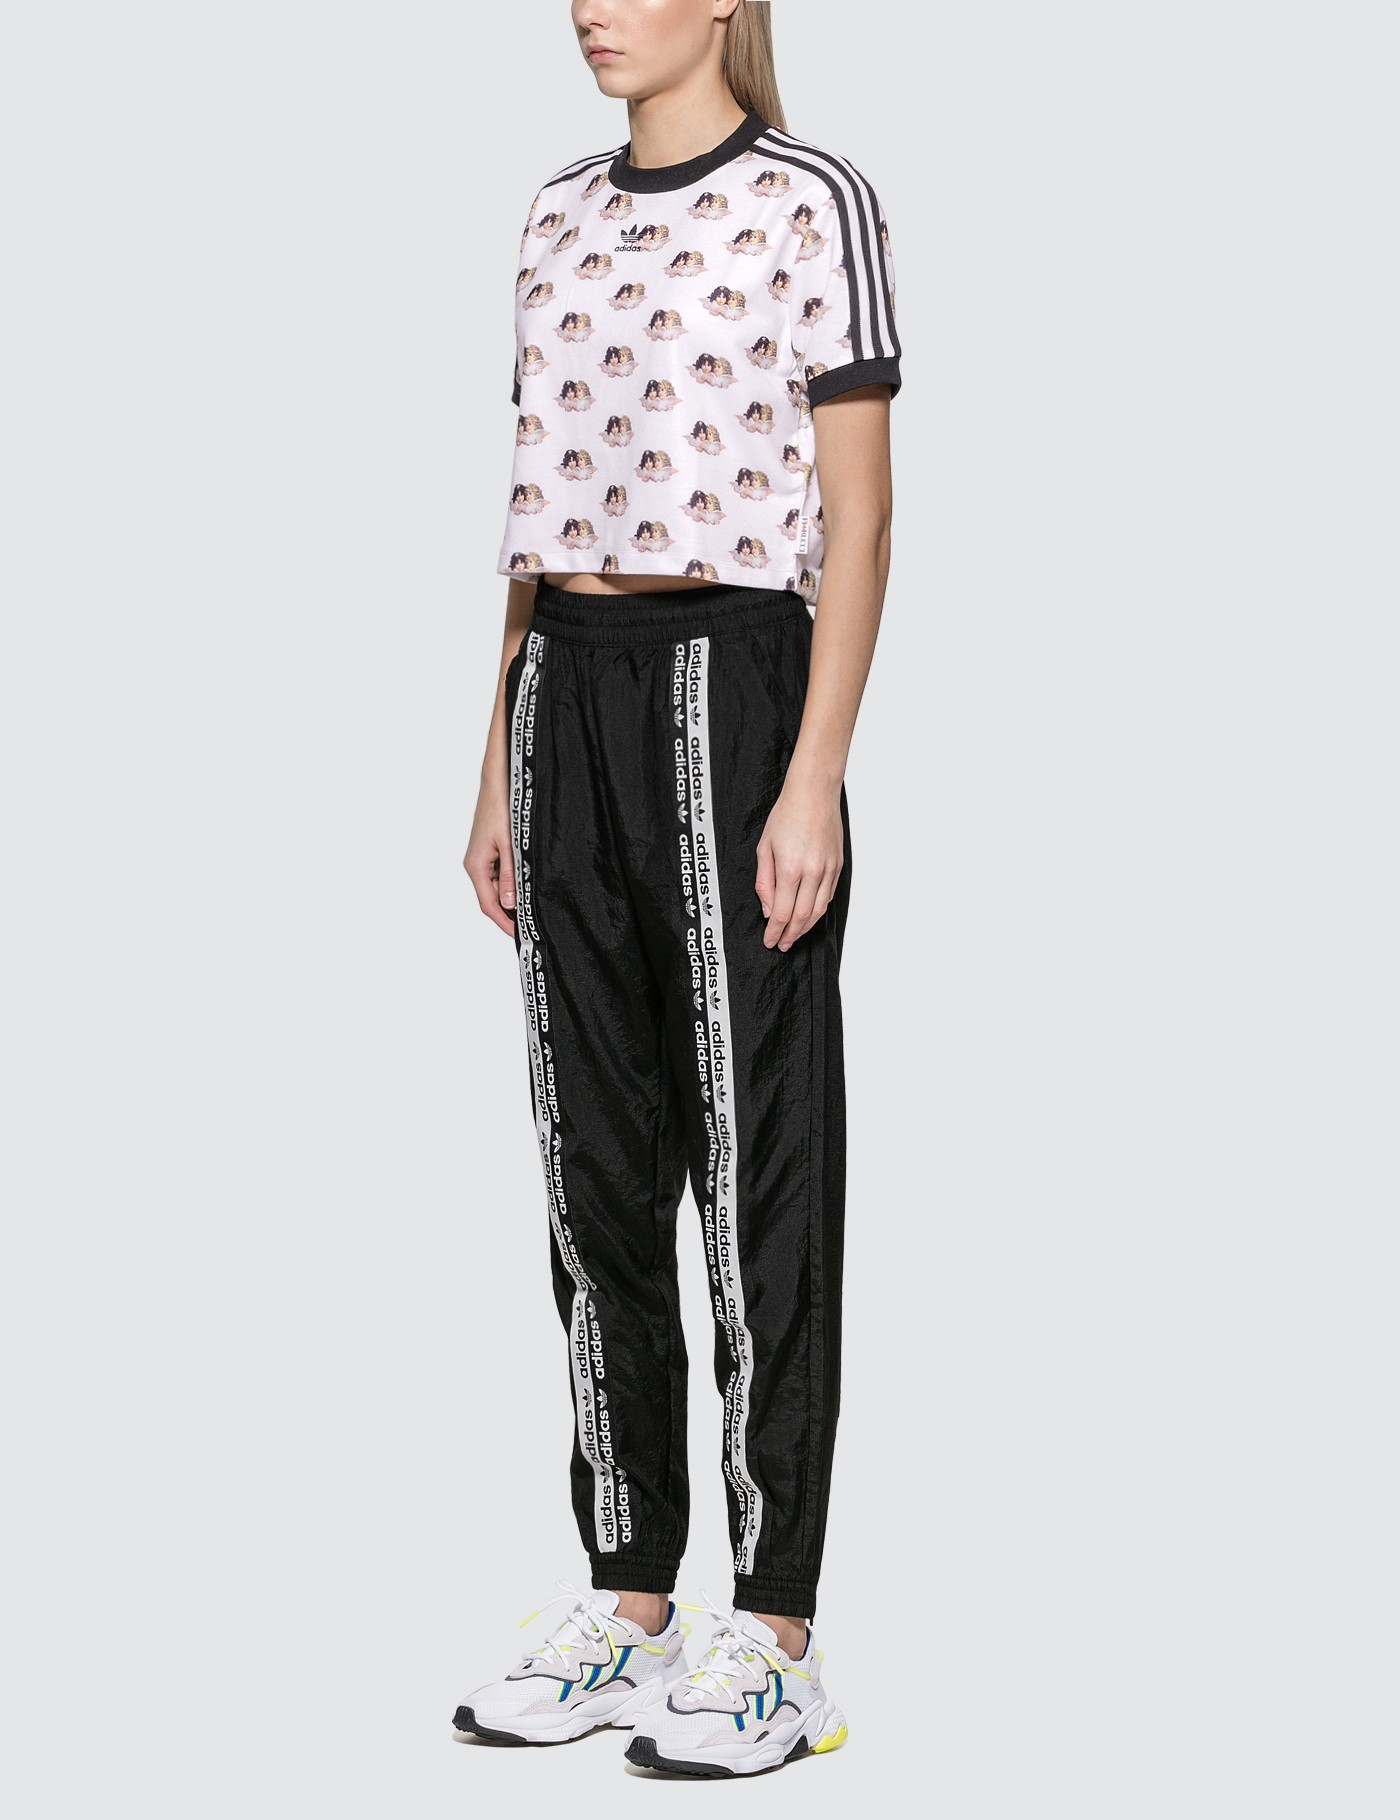 Adidas Originals x Fiorucci Crop T-shirt